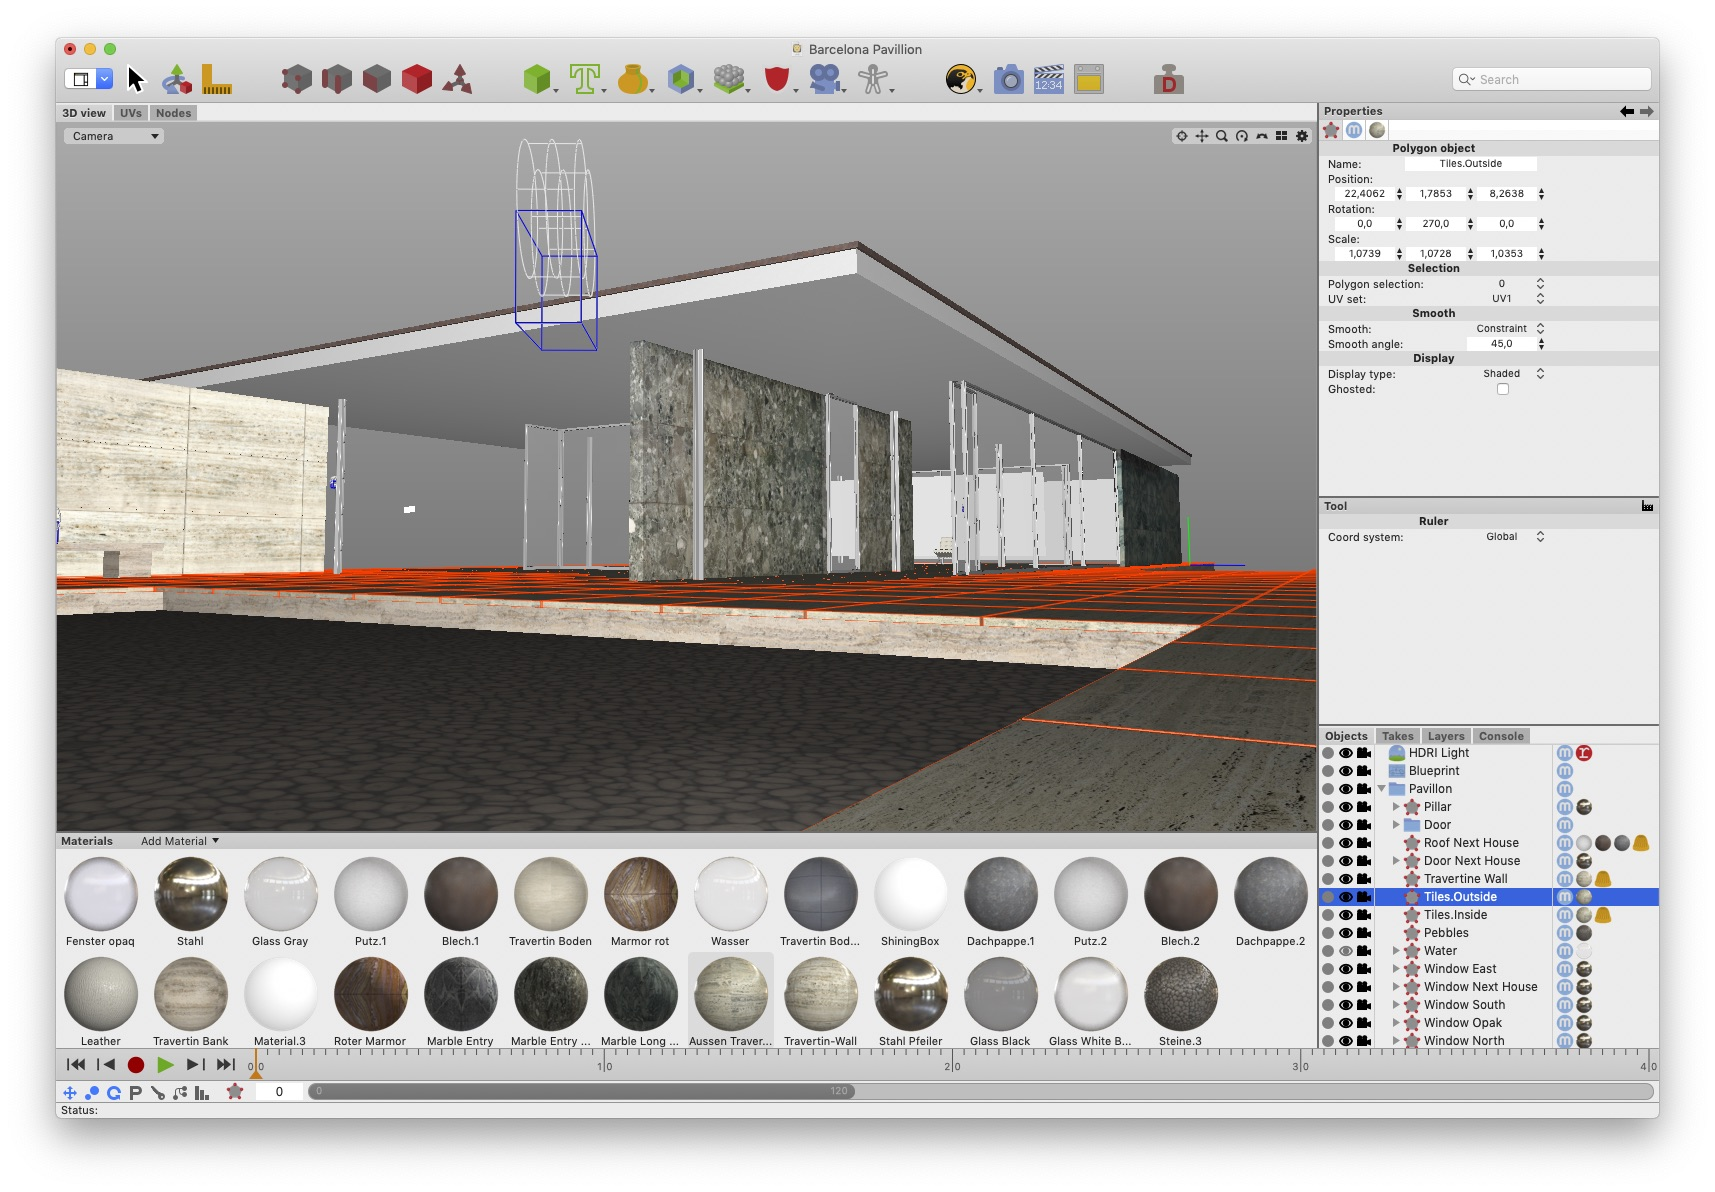 3D model of the Barcelona Pavillon created with Cheetah 3D using Physically Based Rendering materials created with PBRtist.